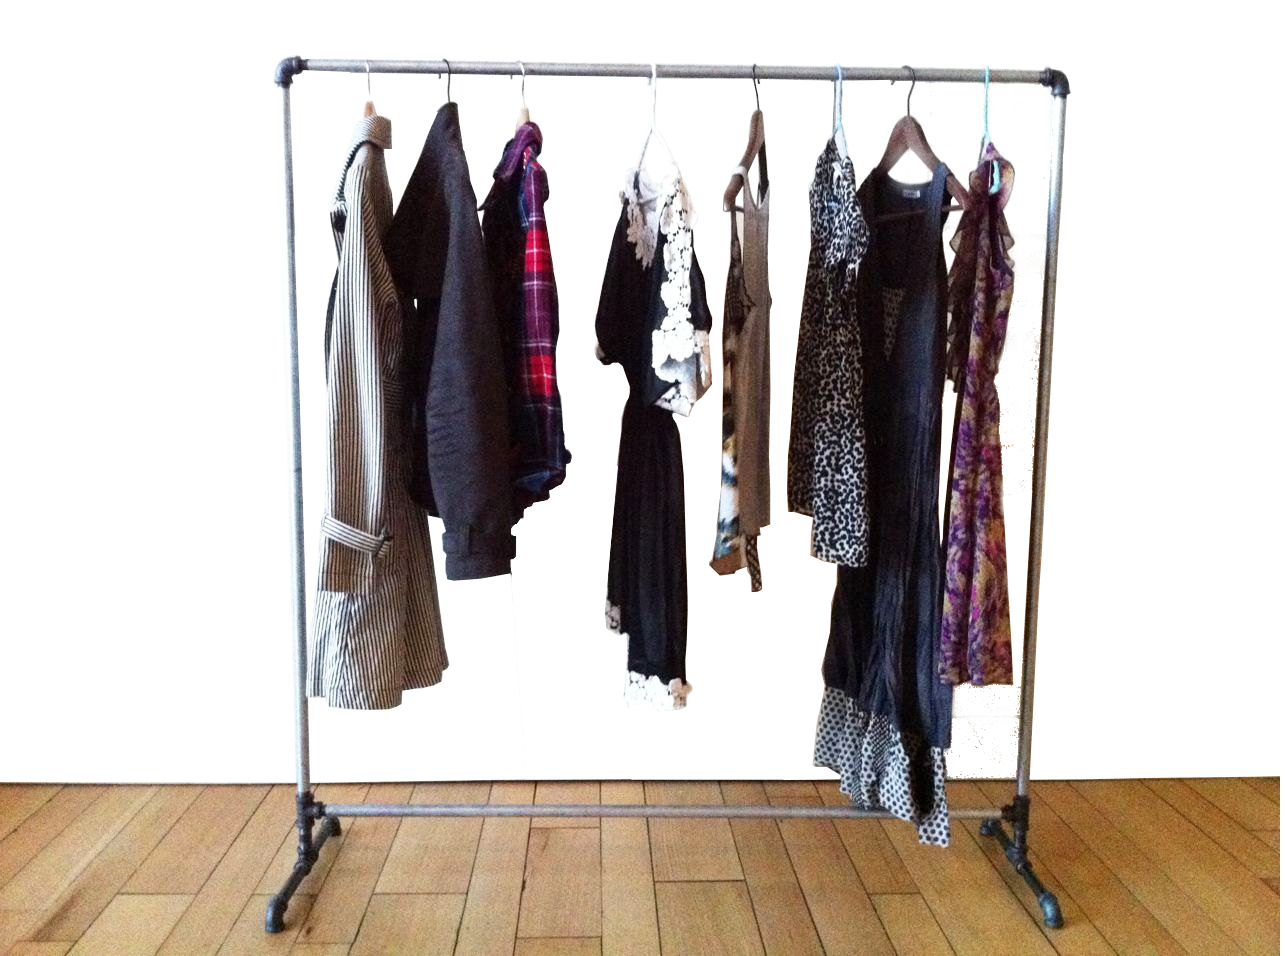 Wardrobe Organization Style Tip #1: in & out on your rack